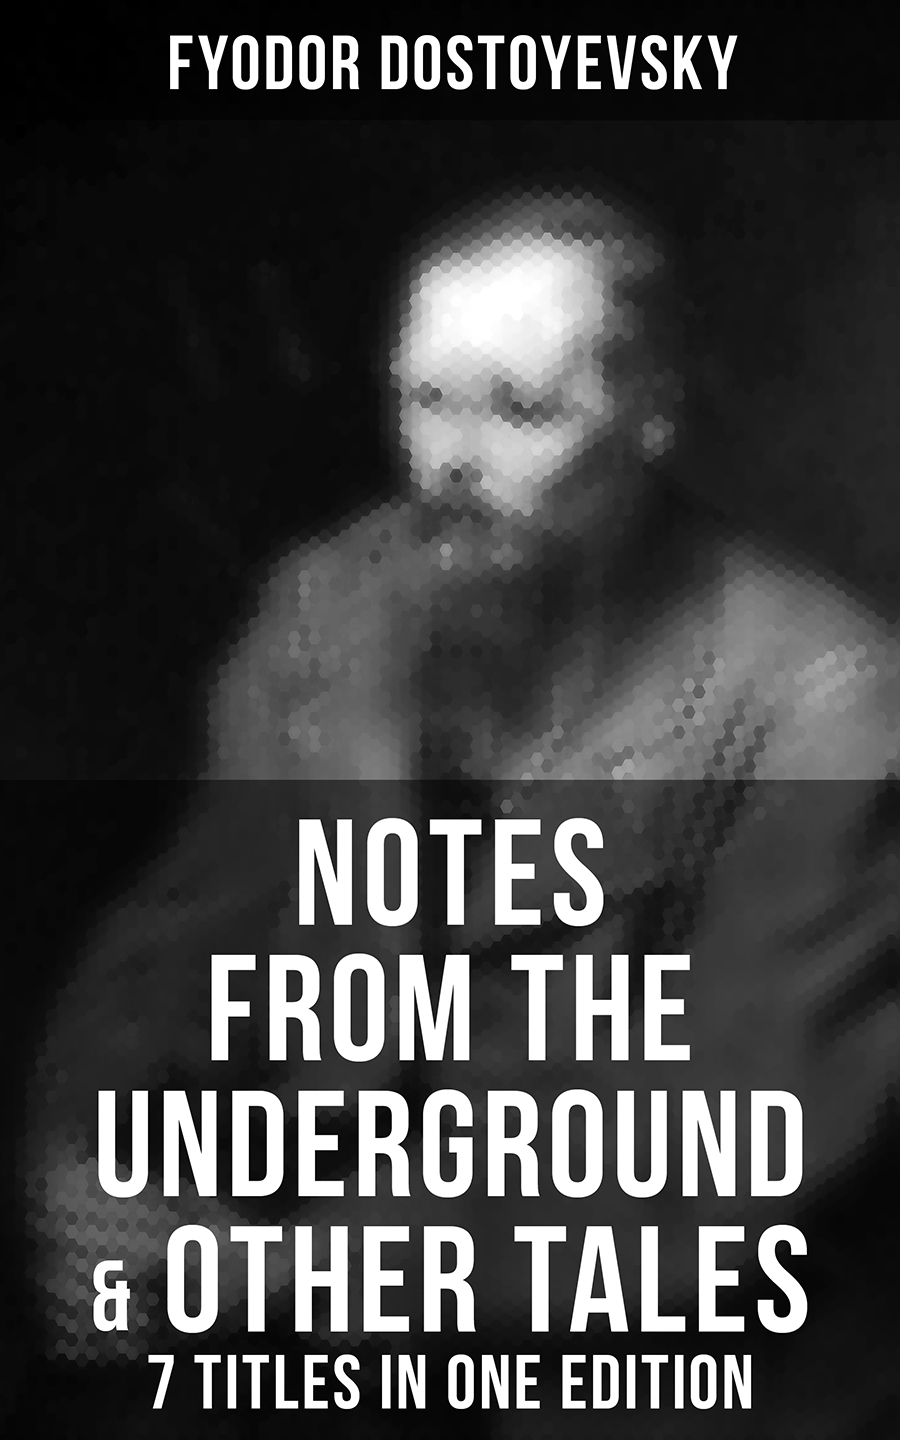 Федор Достоевский Notes from the Underground & Other Tales – 7 Titles in One Edition jivago 7 notes